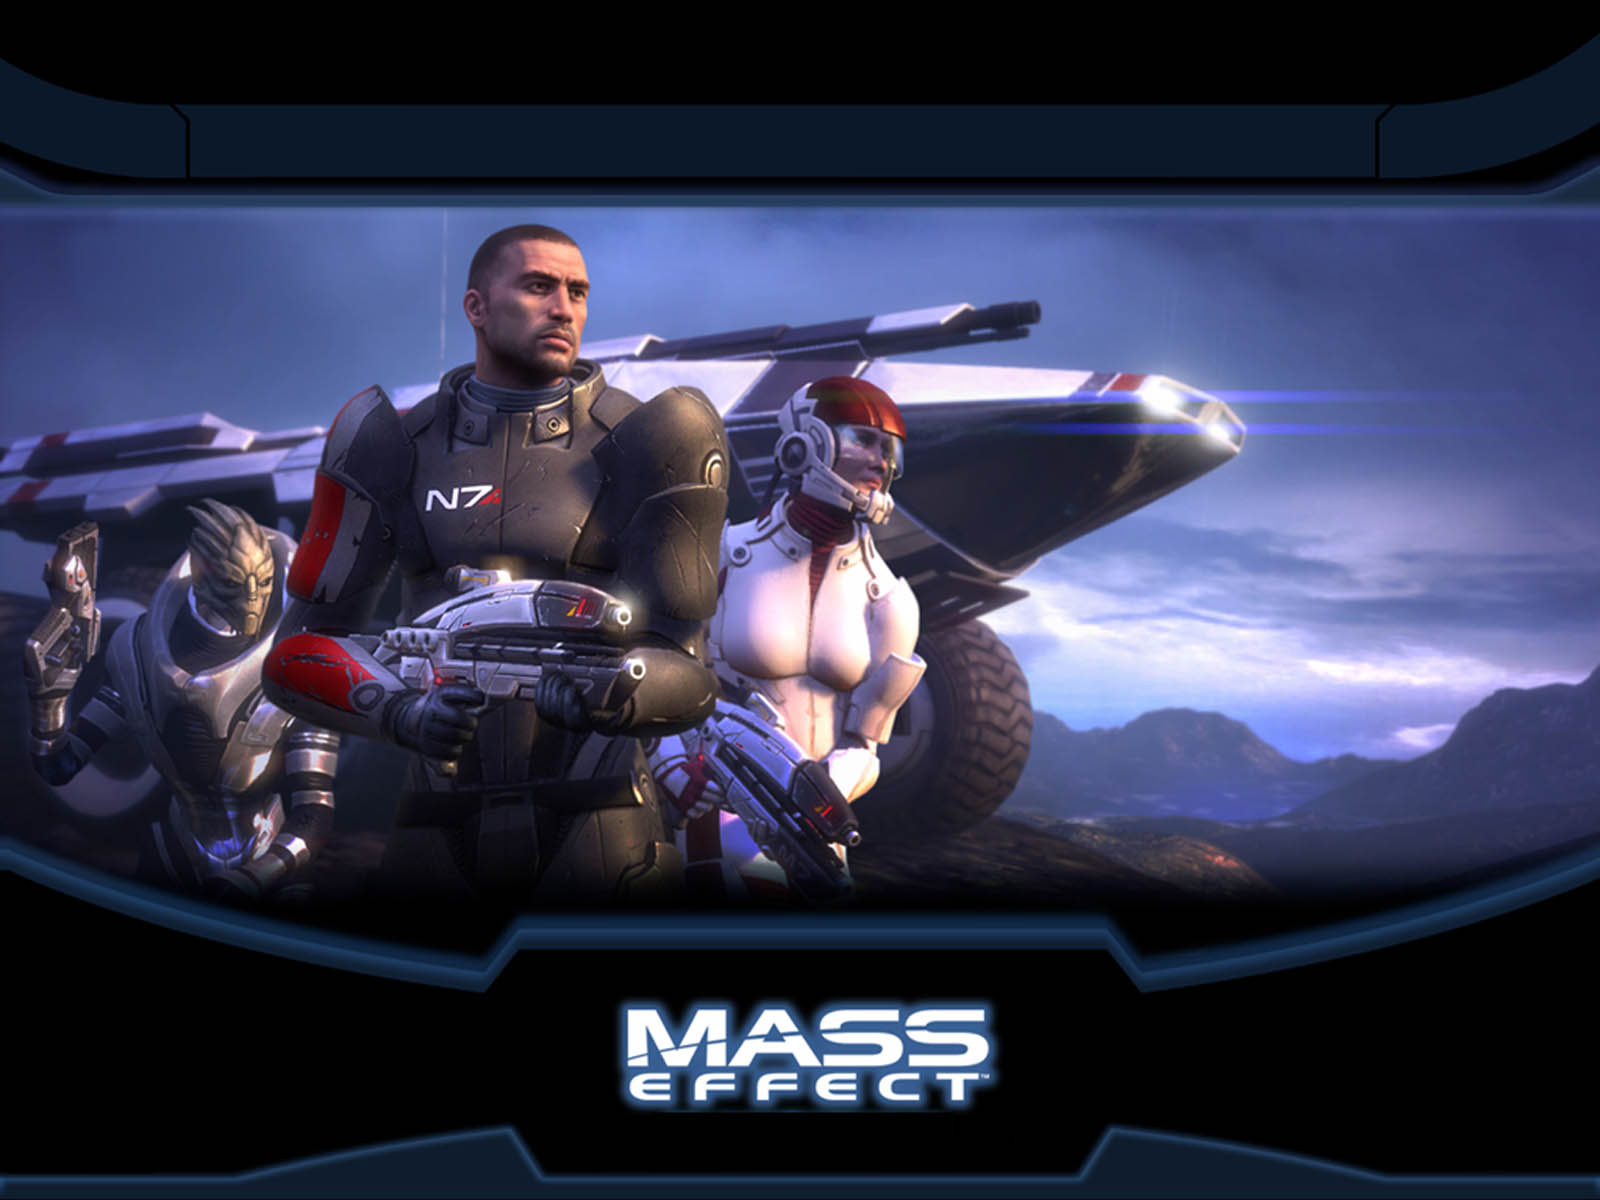 Download Cars Wallpapers For Windows Xp Wallpapers Mass Effect